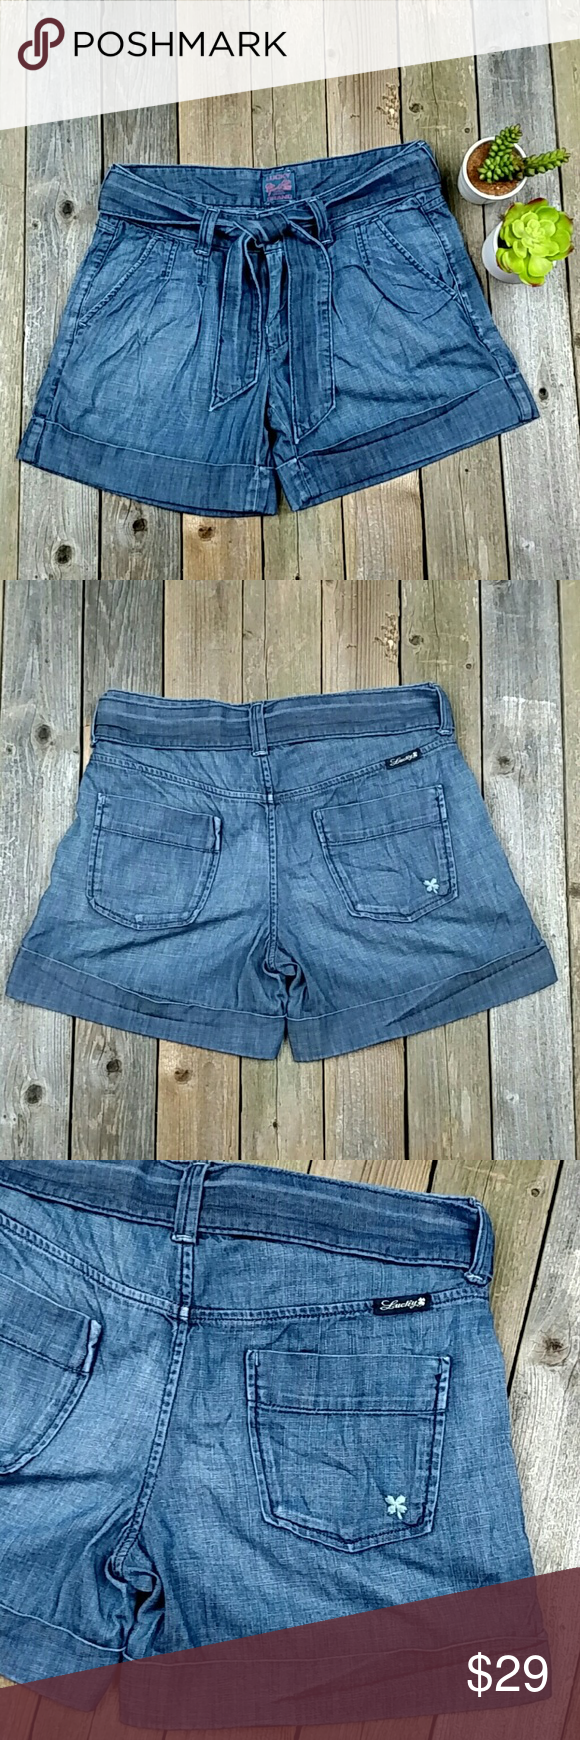 "Lucky Brand Cuffed Pleated Tie Shorts (4/27) Adorable, thin denim shorts. No stretch. 4.5"" inseam, 8.5"" rise, and 15"" across waist; laid flat. Size marked is 4 or 27. Color is like the first 3 pictures. No trades! EUC Lucky Brand Shorts"